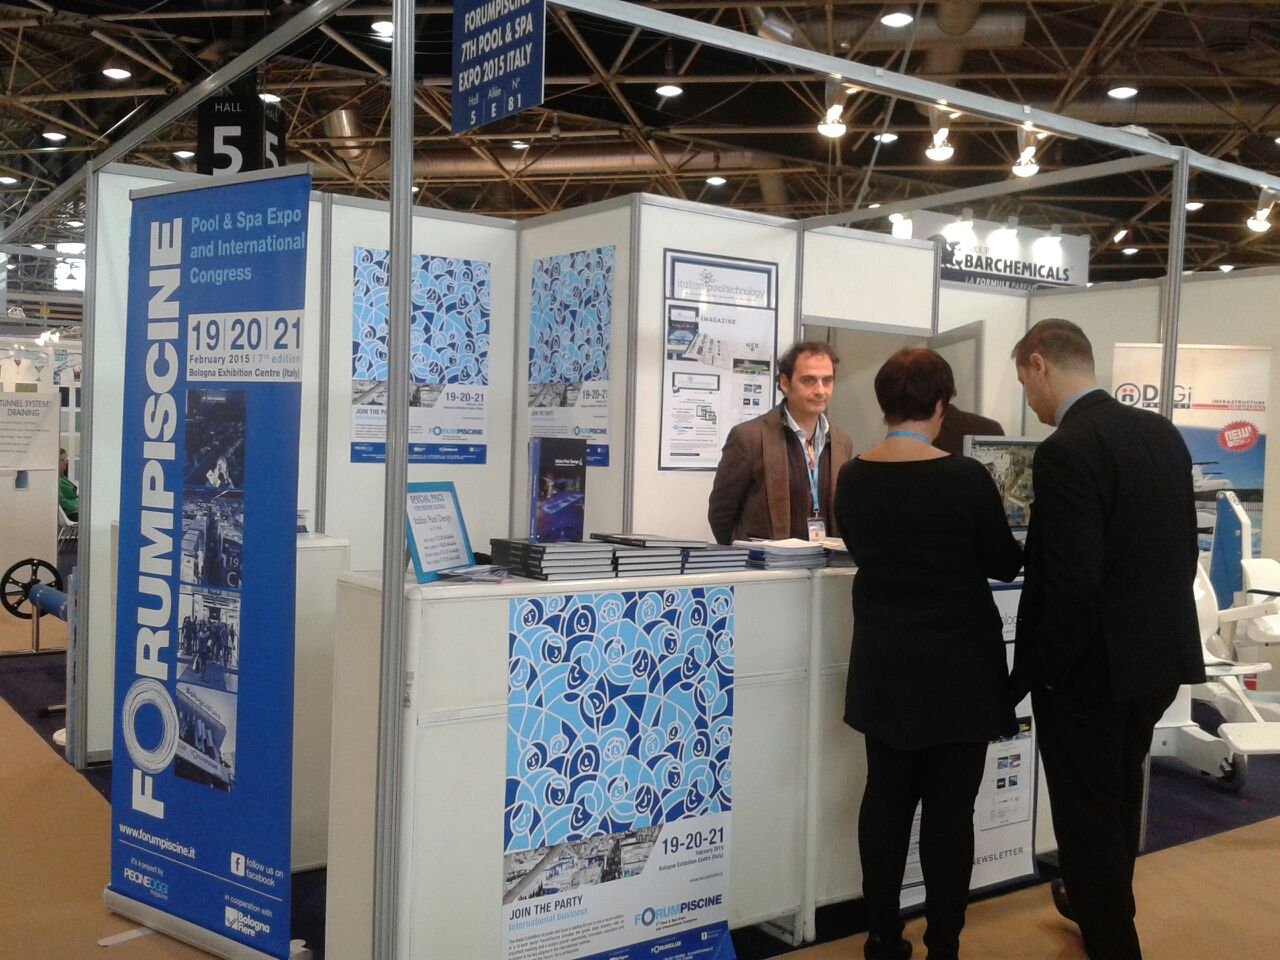 Italian Pool Technology at Piscine Globale 2014